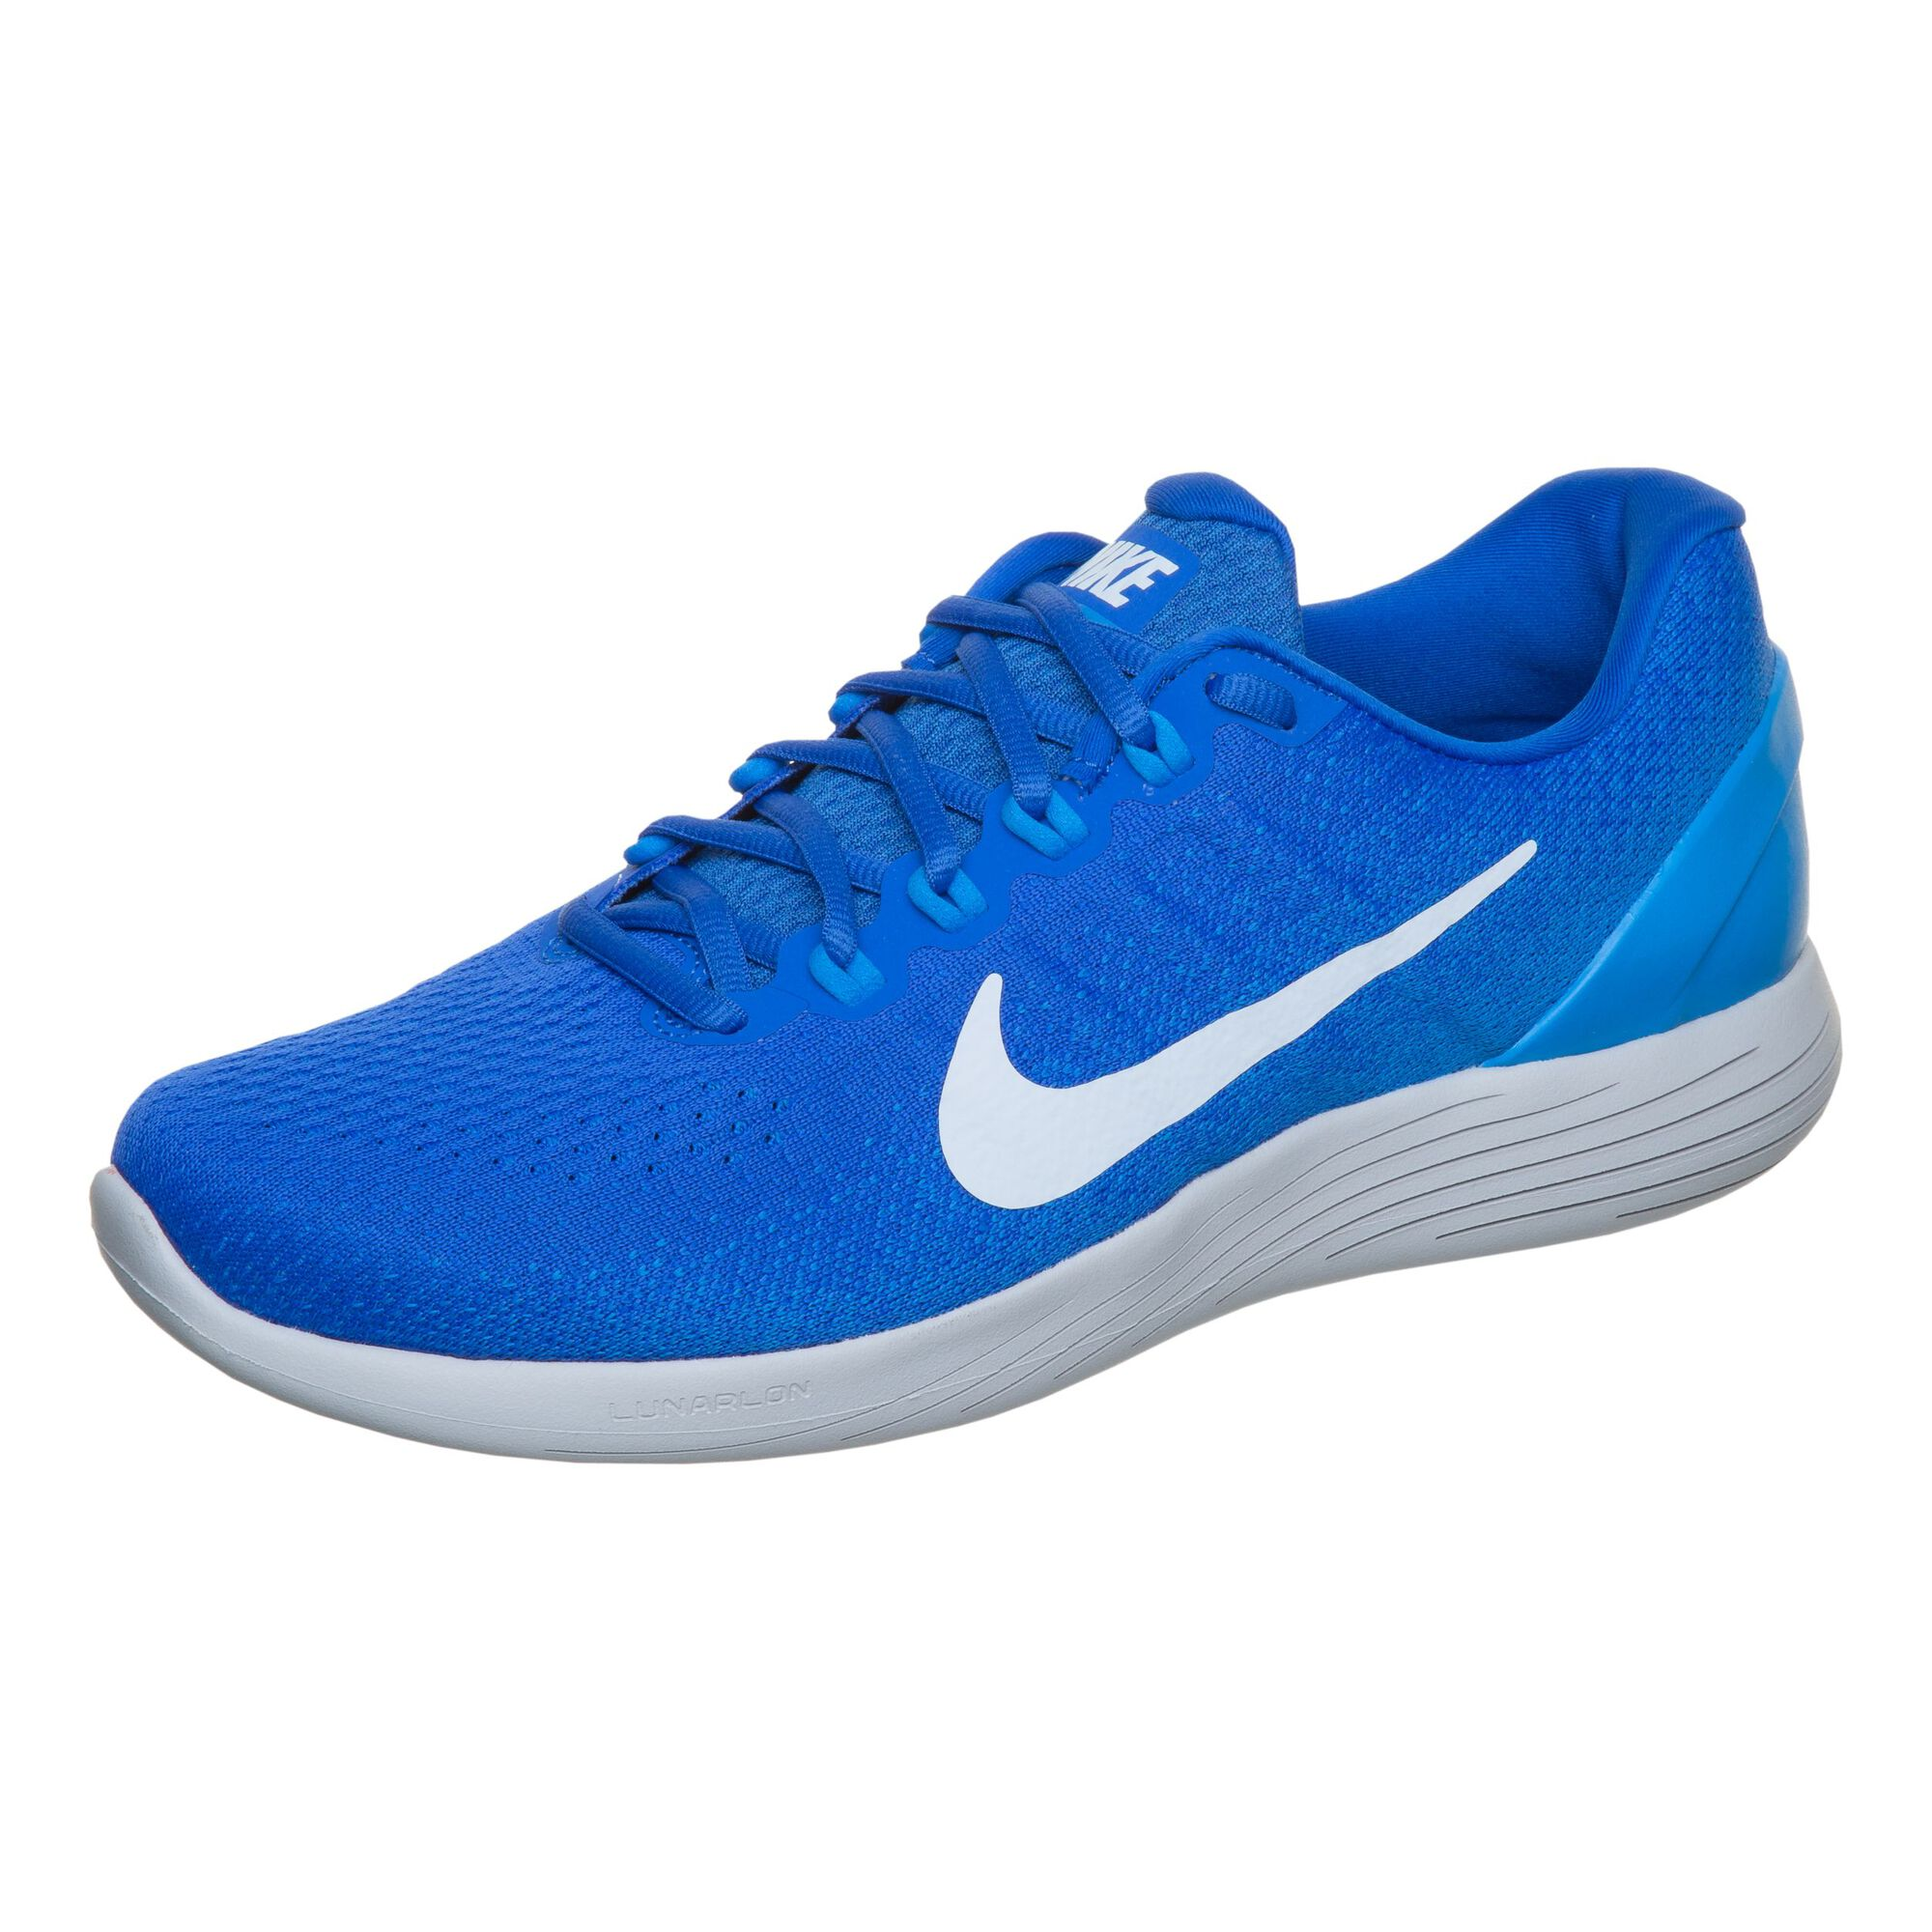 3791fe806911b buy Nike LunarGlide 9 Stability Running Shoe Men - Blue